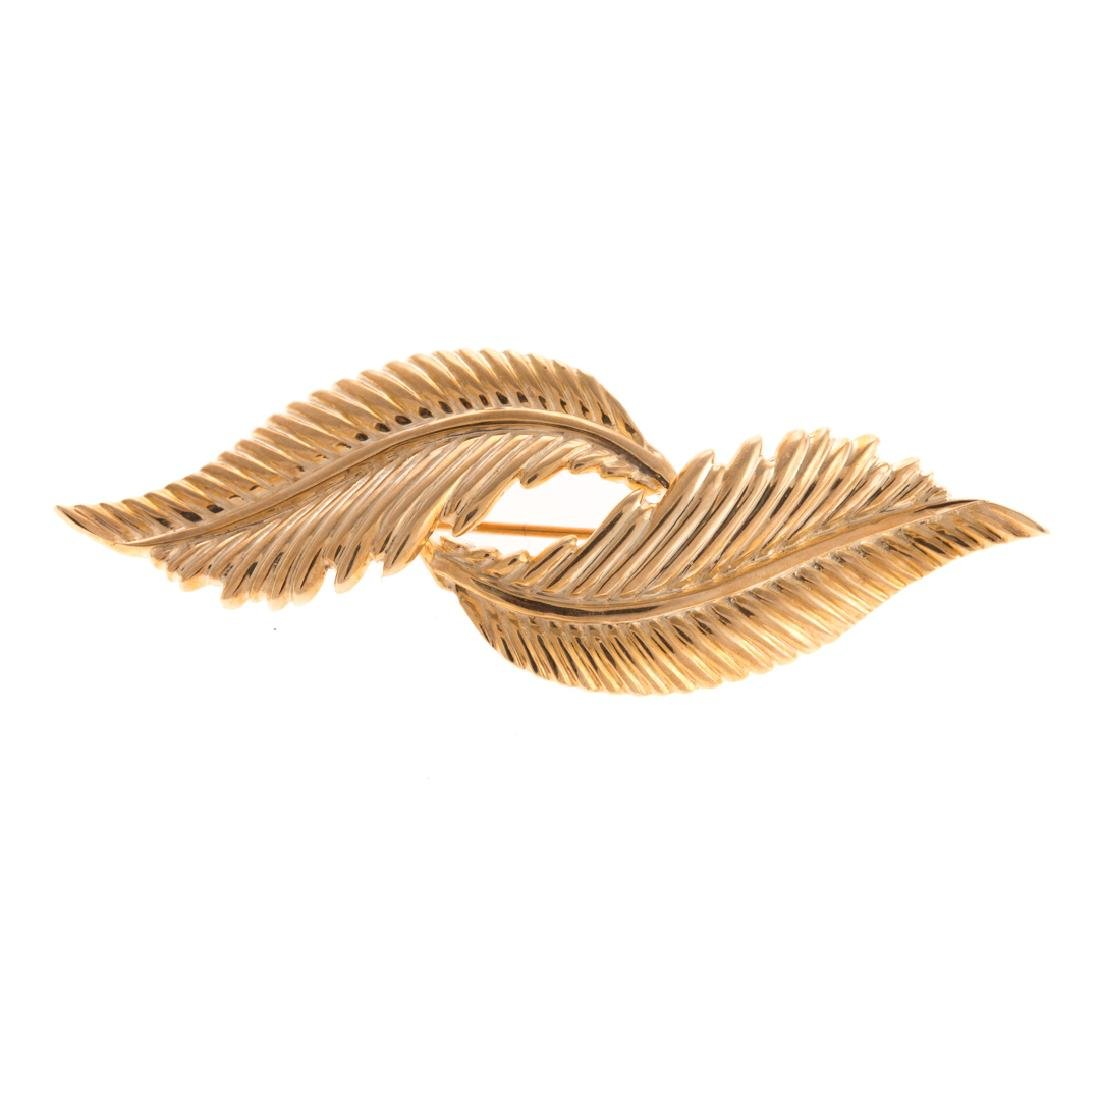 A Lady's Feather Brooch in 14K Gold